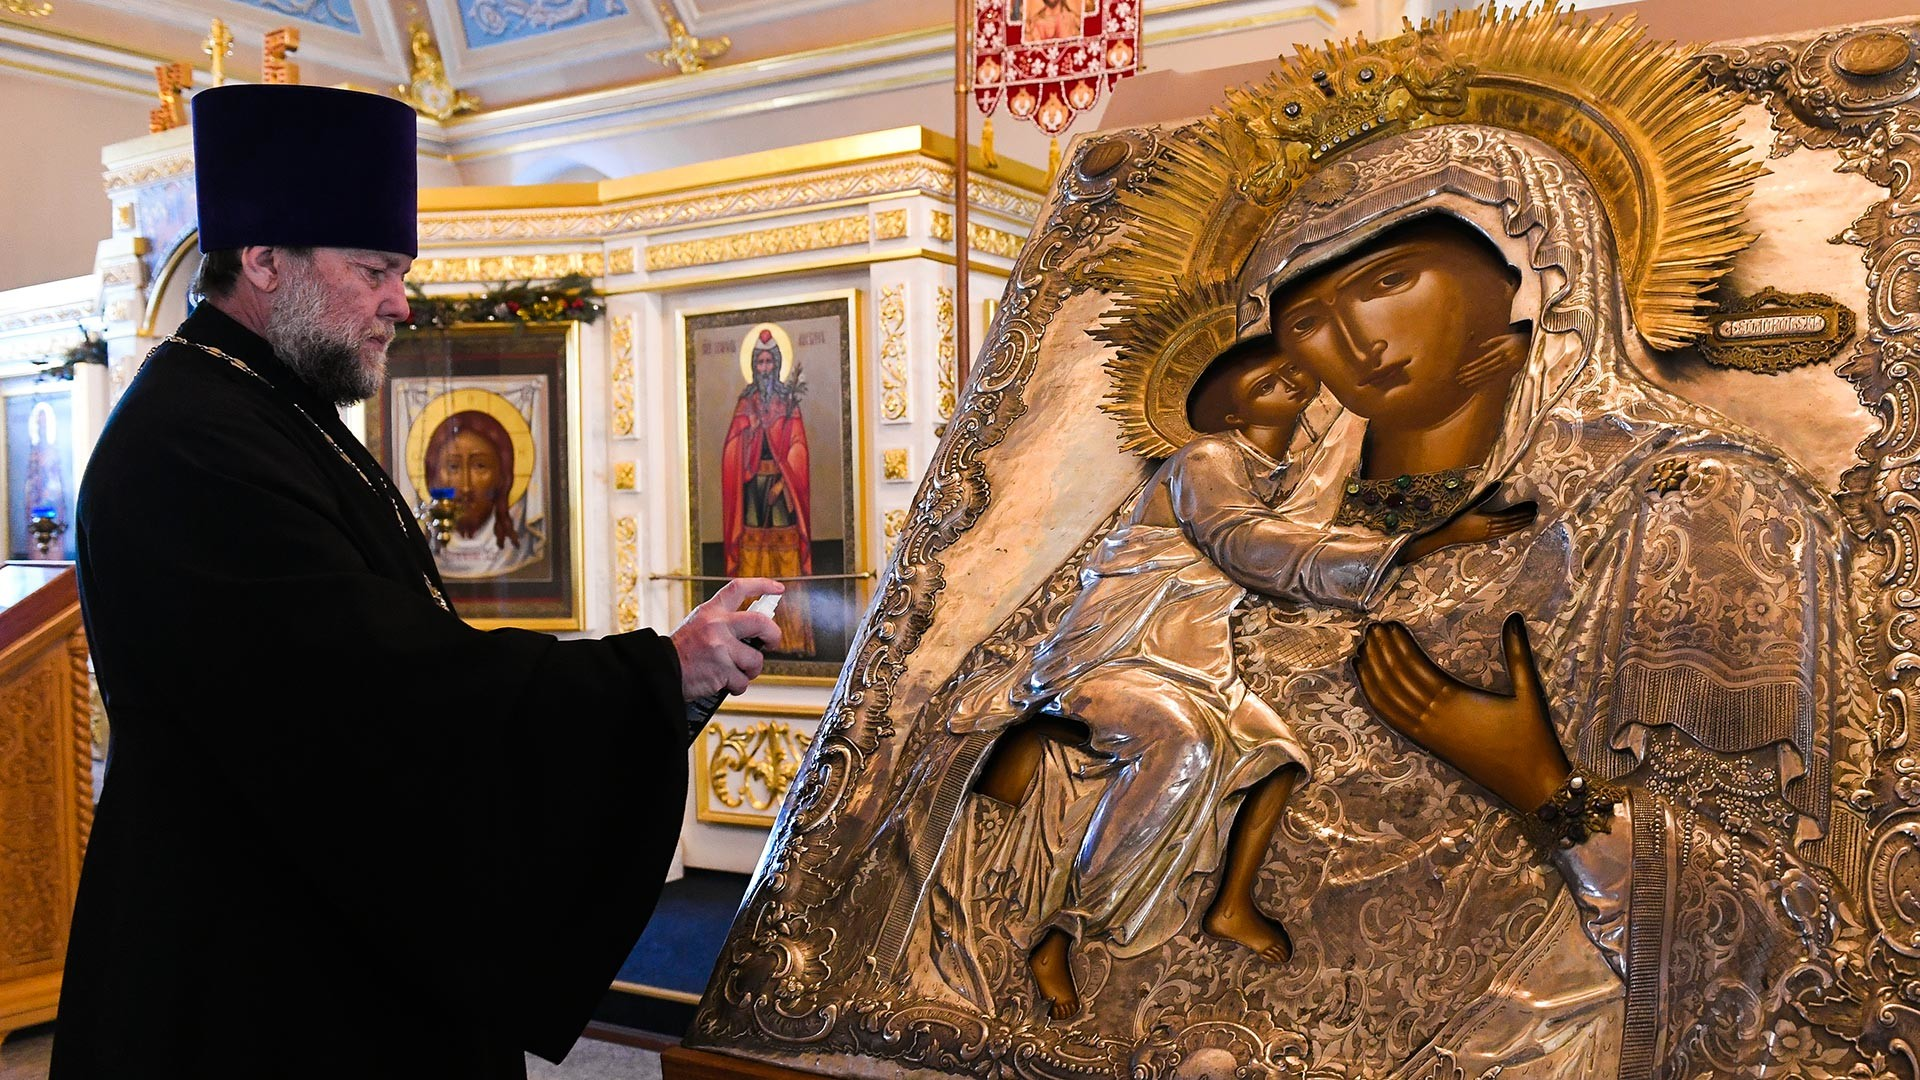 The rector of the Church, priest Vladimir Dukhovich during the sanitary treatment of the icon in the Church of St. Alexy in Rogozhskaya Sloboda